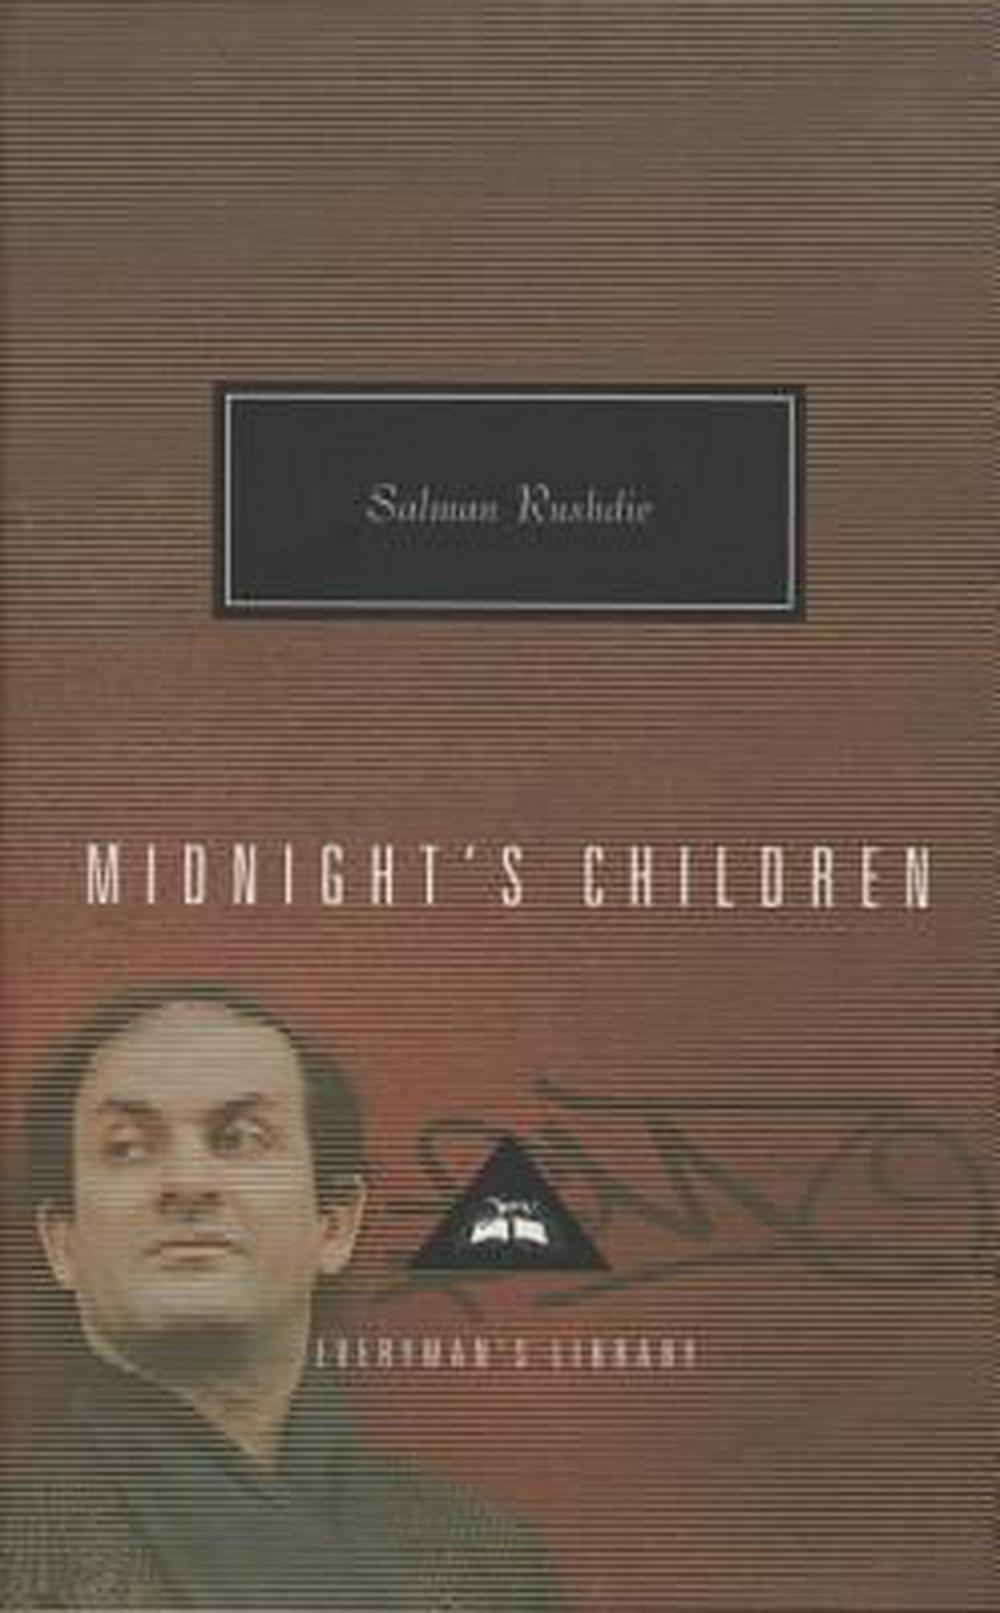 summary of midnights children by salamn Find great deals for midnight's children by salman rushdie (paperback, 1998) shop with confidence on ebay born at the stroke of midnight, at the precise moment of india's independence, saleem sinai is destined from birth to be special.